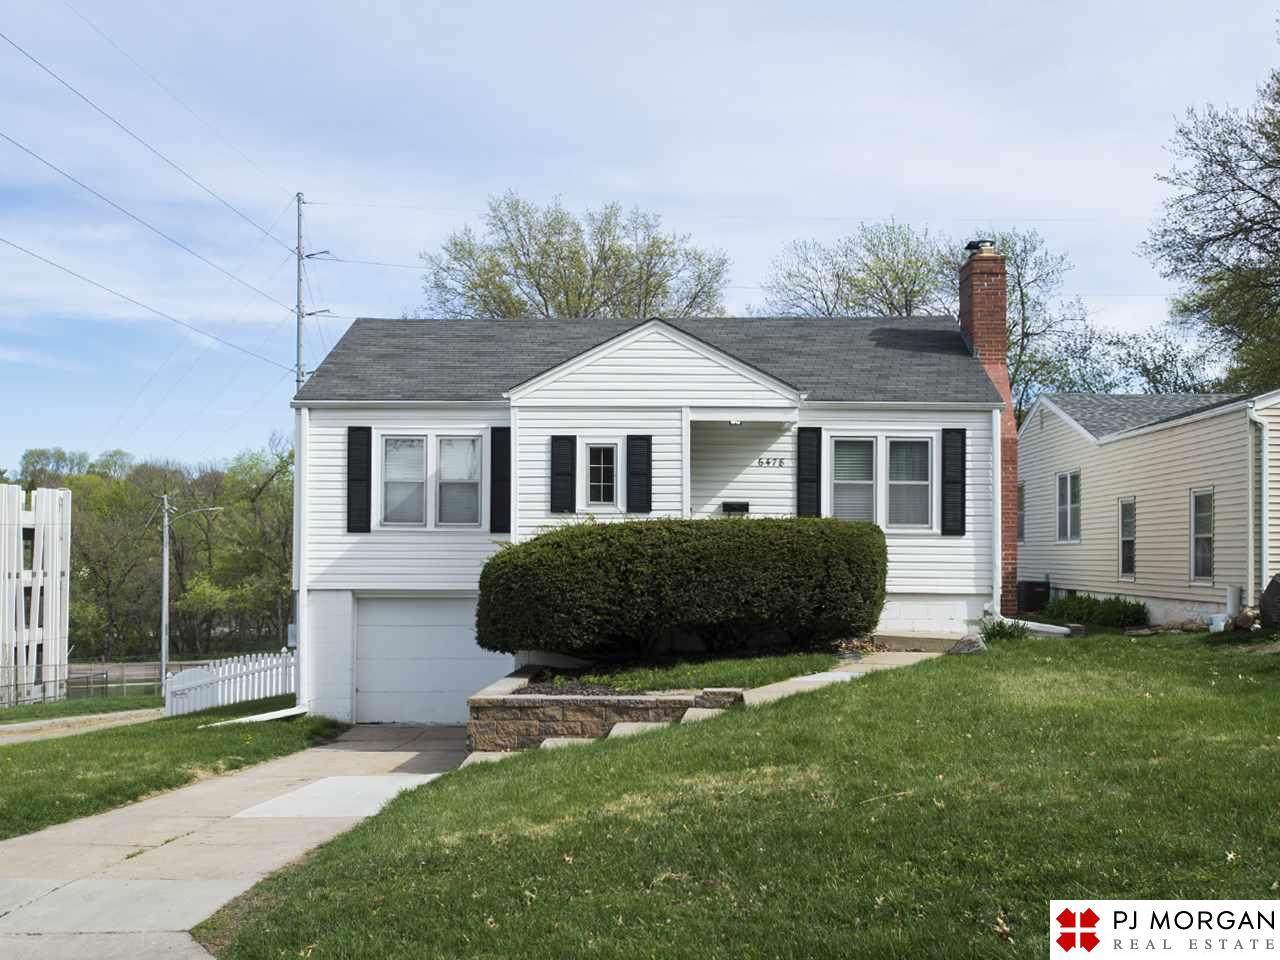 6478 Pierce Street - Photo 1